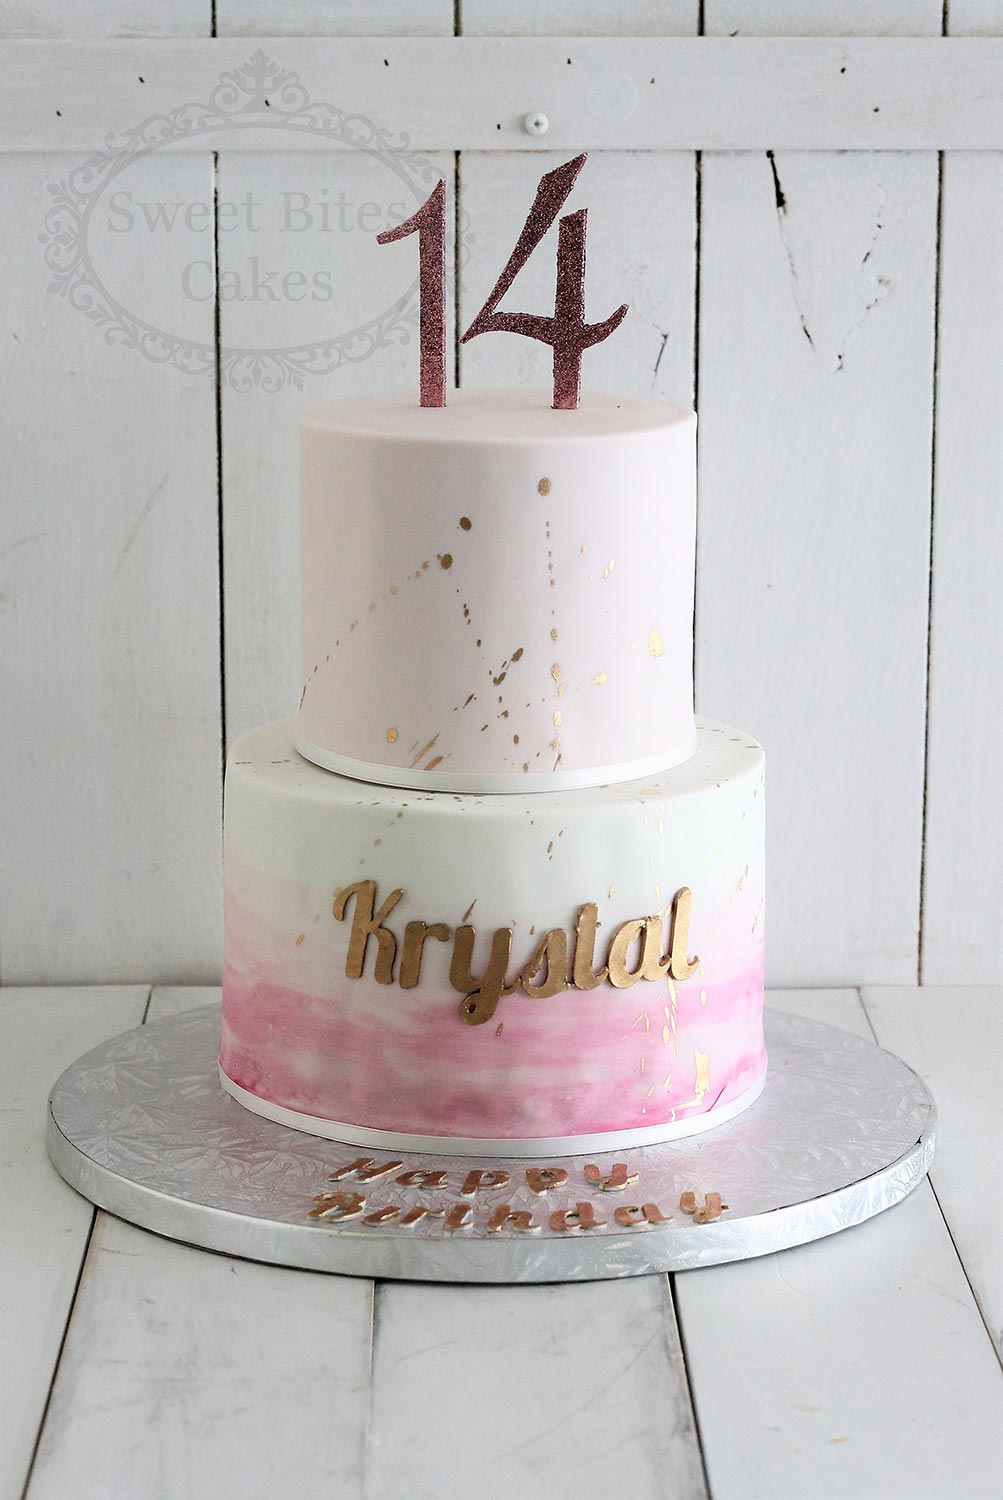 Phenomenal 2 Tier 14Th Birthday Cake With Gold Splatter Sweet Bites Cakes Personalised Birthday Cards Arneslily Jamesorg